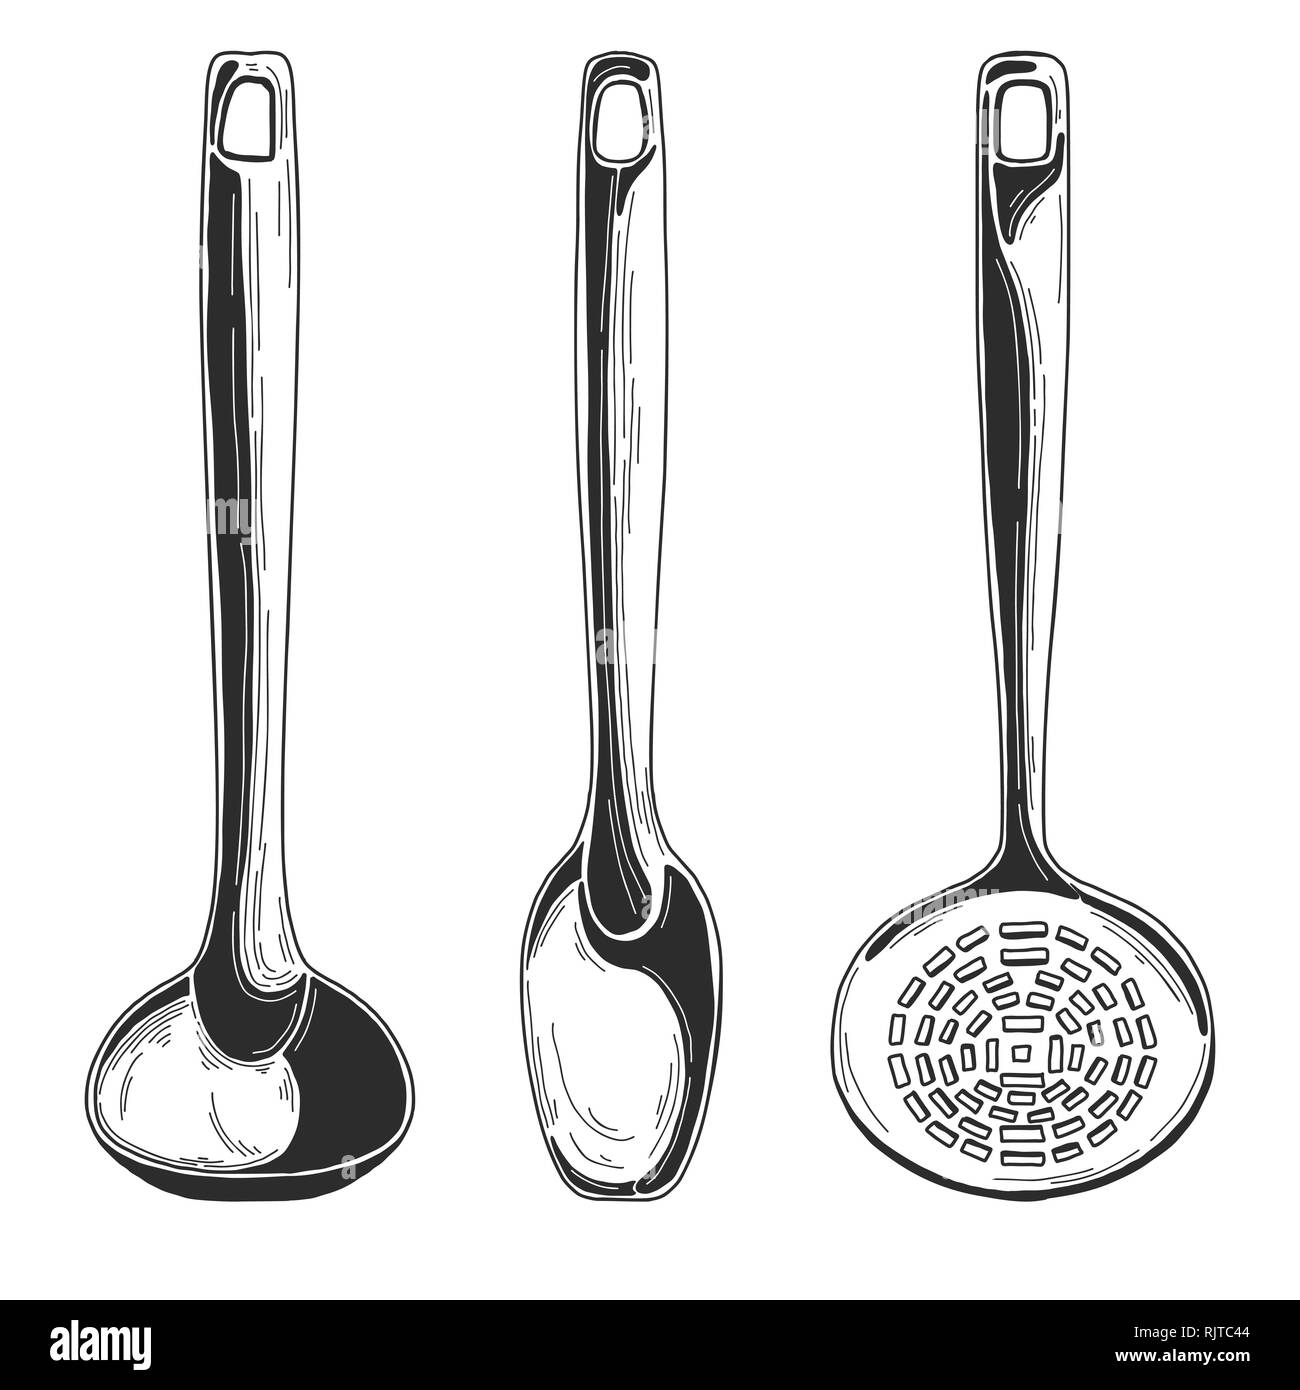 Kitchen utensils. Different spoons and other accessories. Isolated vector illustration on white background. - Stock Vector